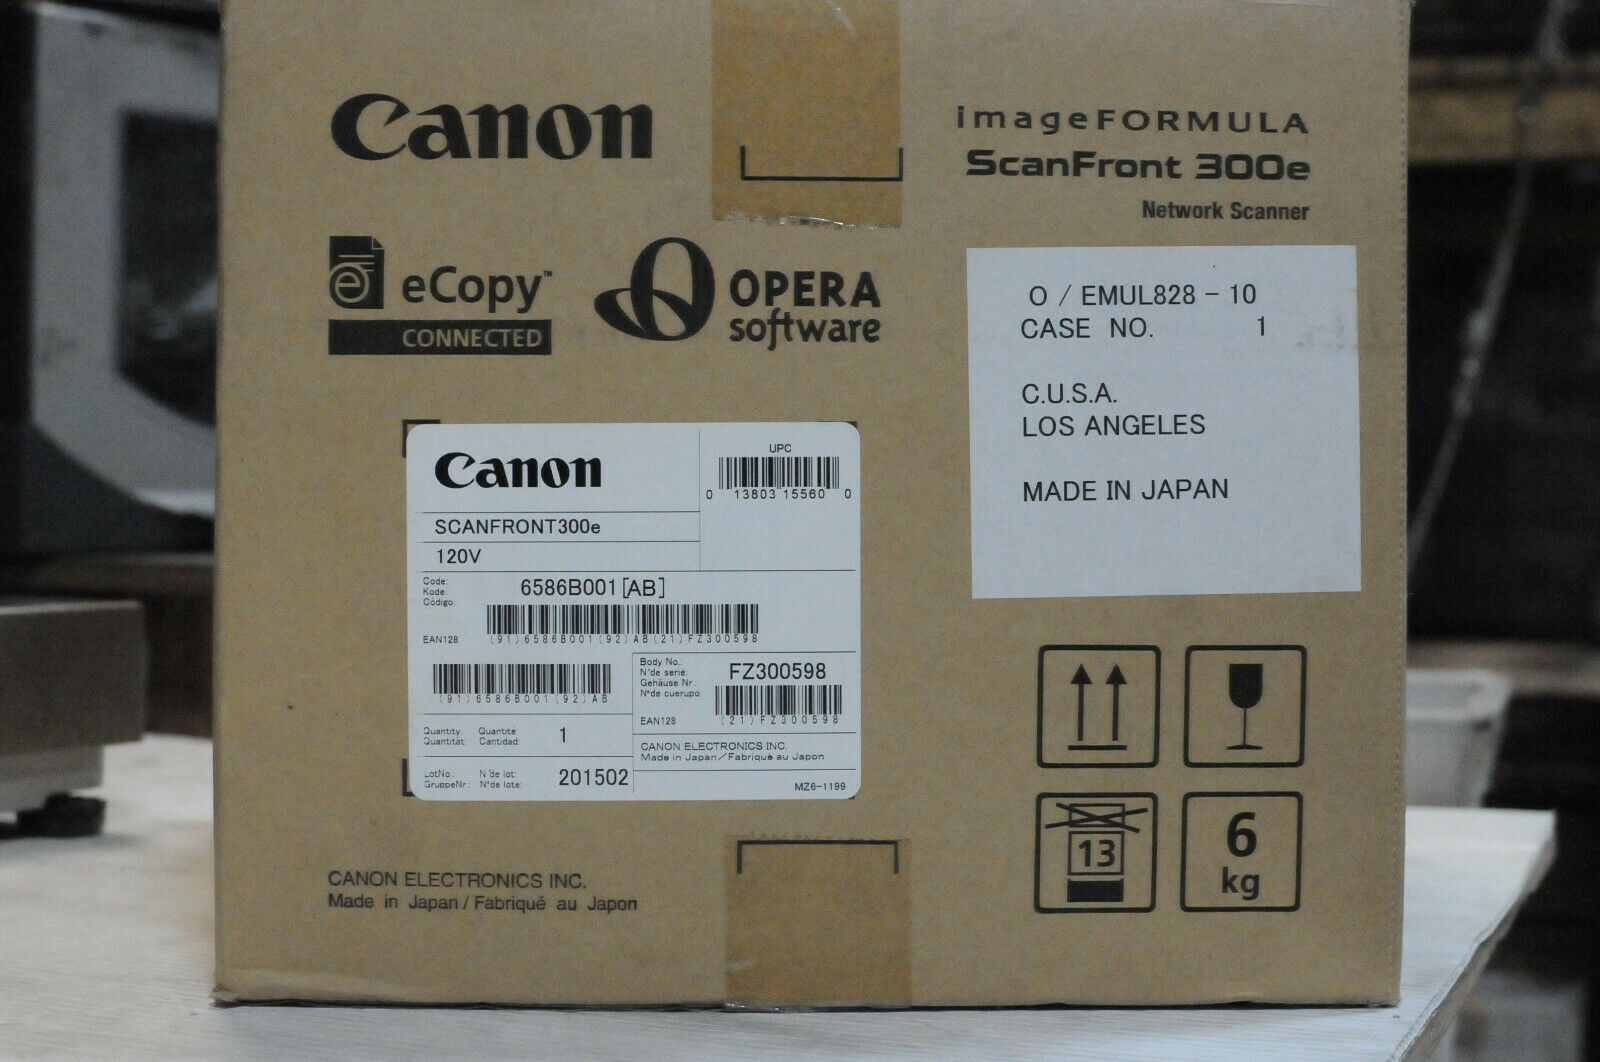 Canon imageFORMULA ScanFront 300e Networked Document Scanner